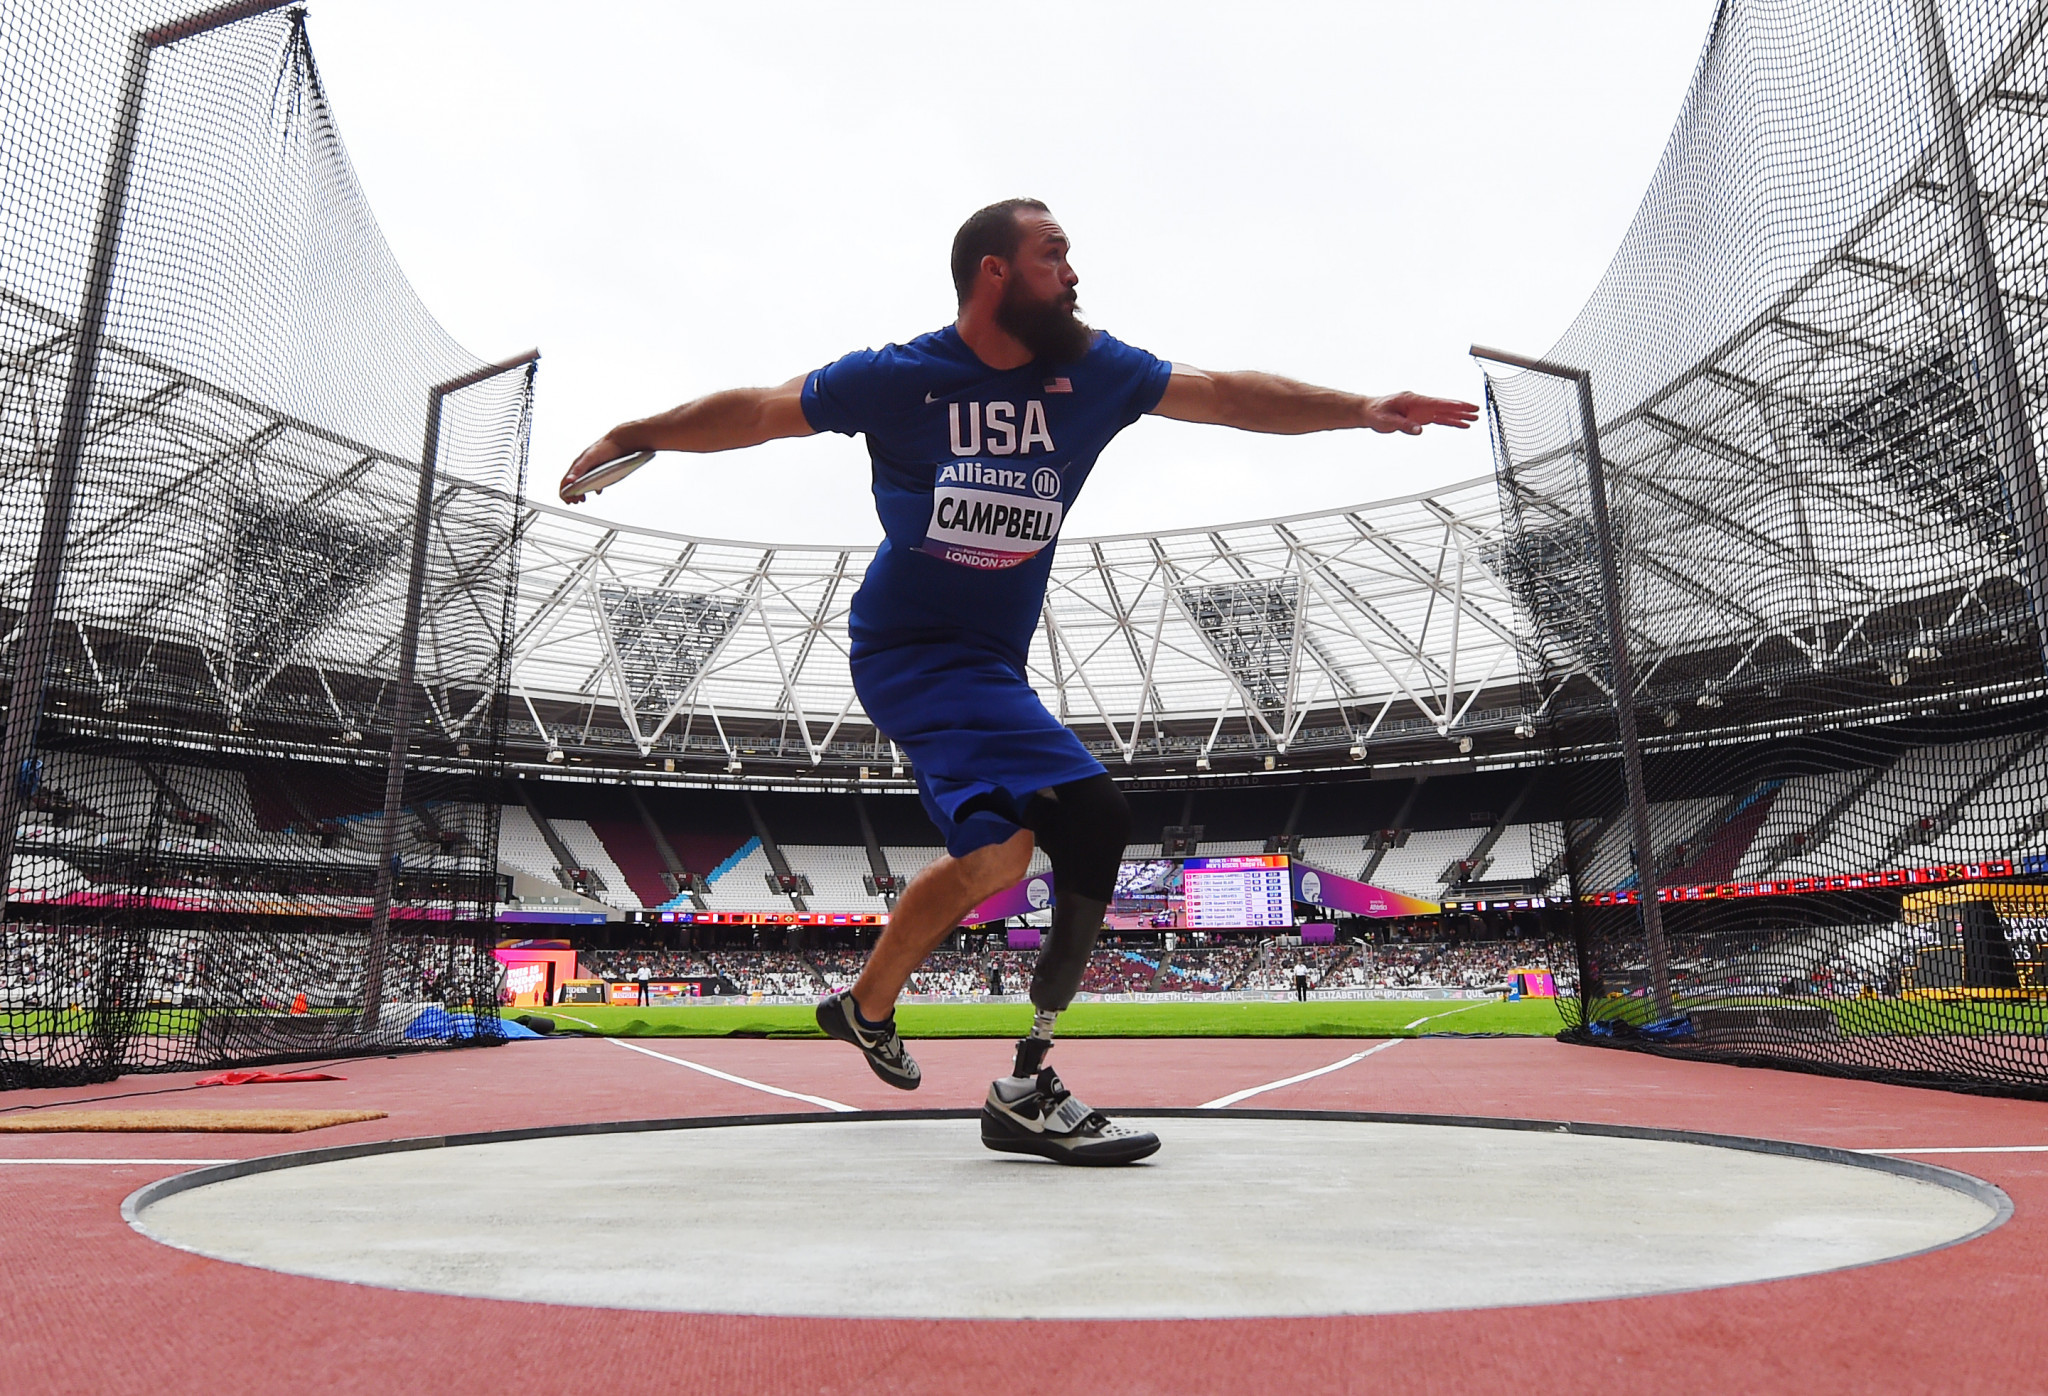 Discus thrower Jeremy Campbell is one of 36 Paralympic champions selected for the US team to compete at the Parapan American Games in Lima ©Getty Images